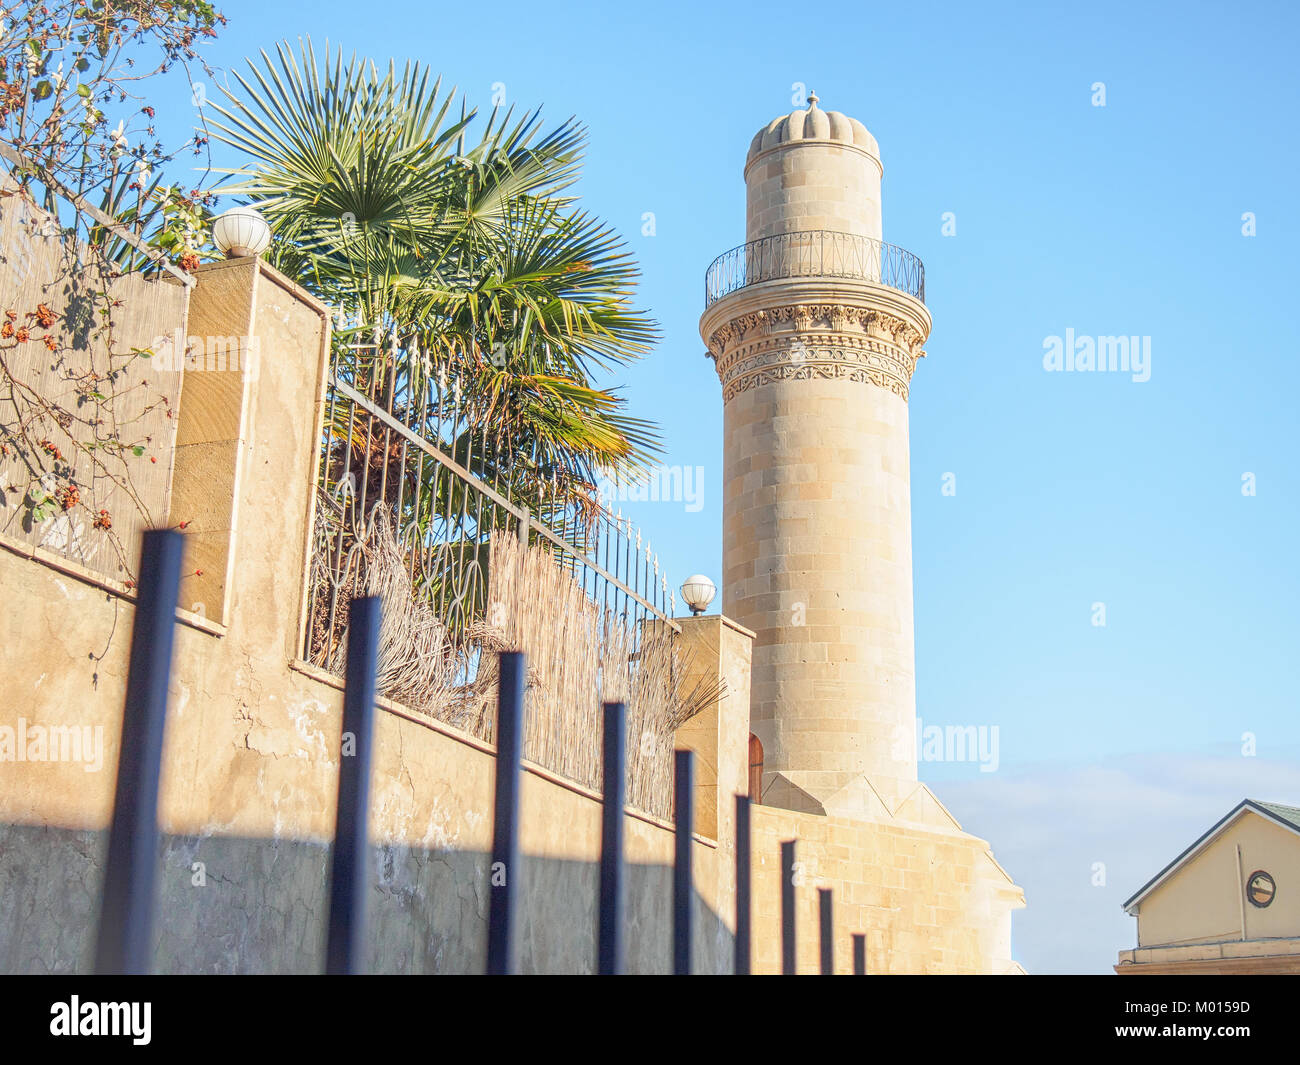 Ancient minaret of Muhammad Mosque in Baku old town - Stock Image